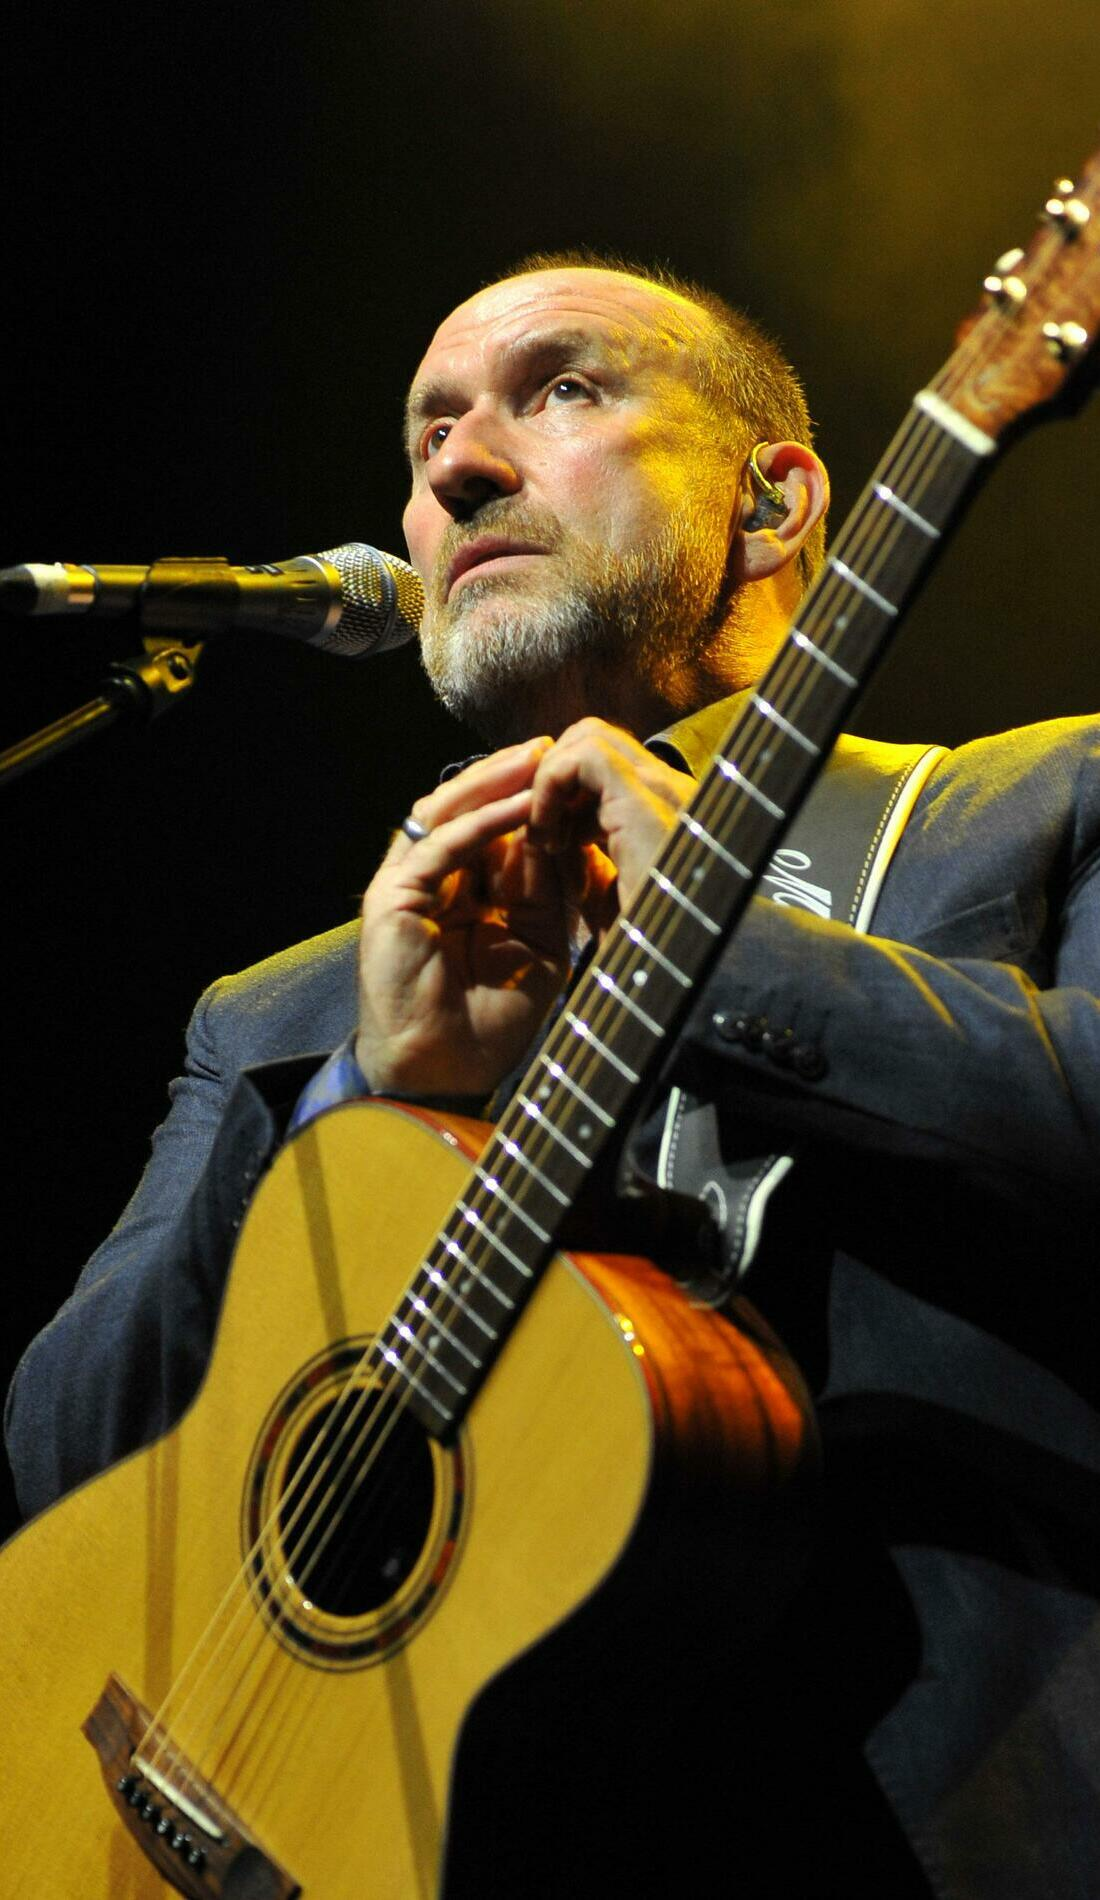 A Colin Hay live event